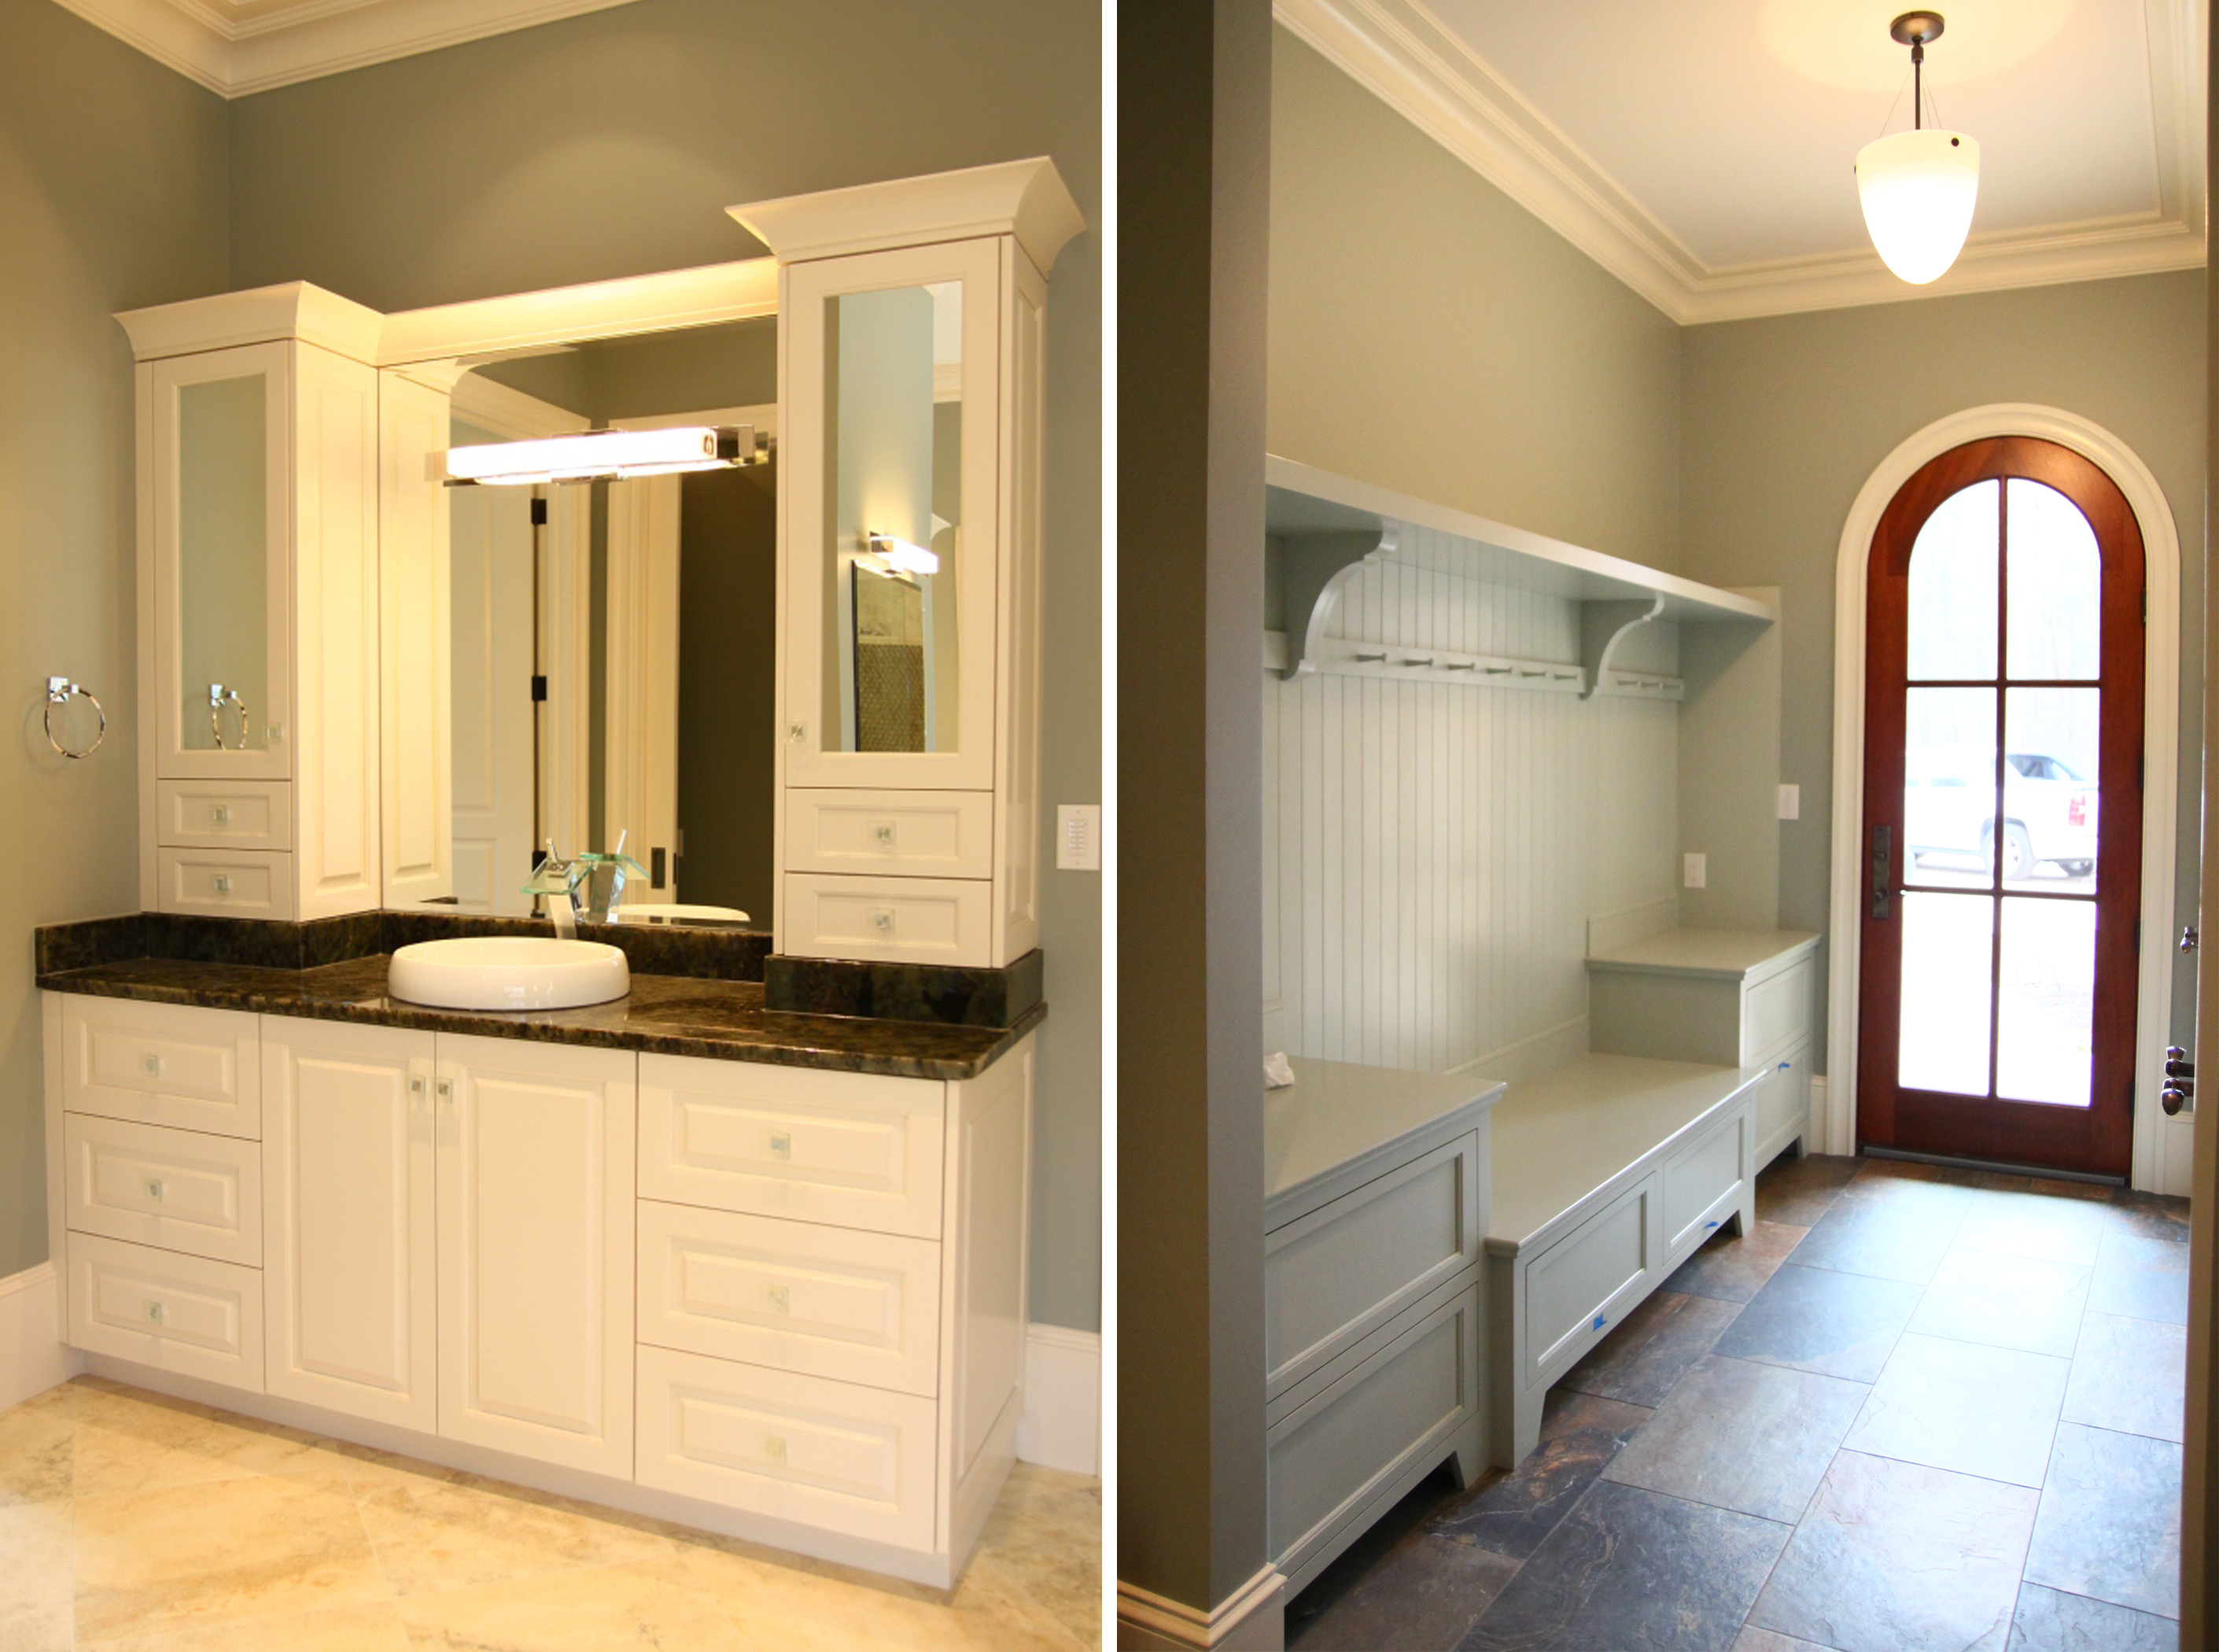 design lines blog cabinetry cary home bathroom vanity and hall mud on split entry home designs, side hall home designs, side entrance garage doors, circular foyer entryway designs, garage and front house designs, side entrance house plans, foyer ceiling designs, side porch home designs,